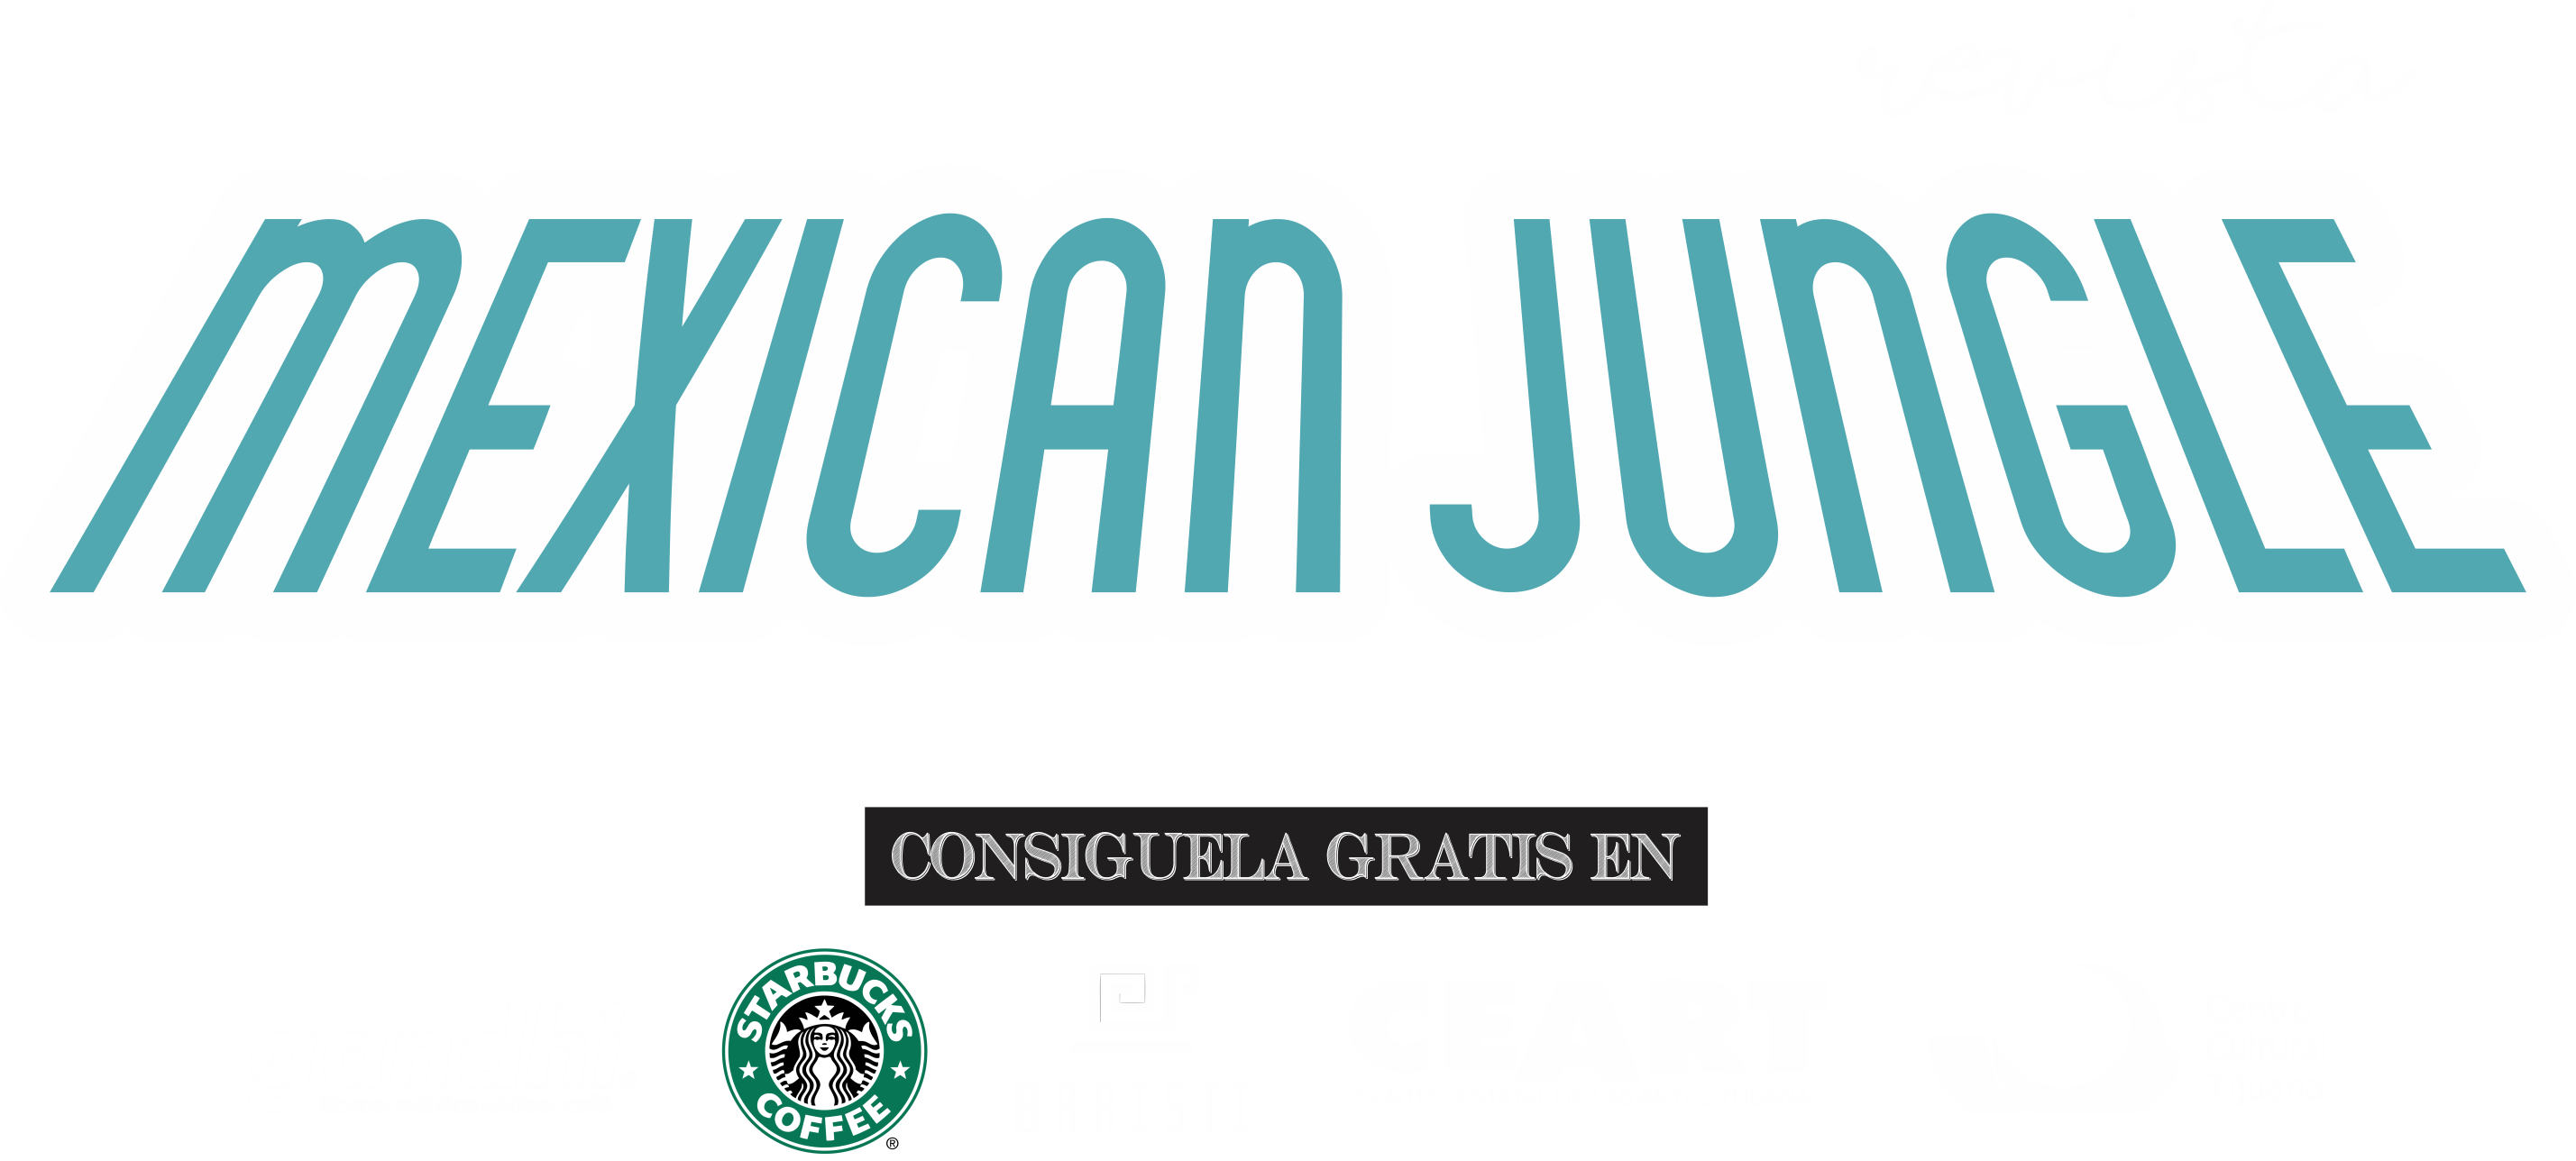 Revista Mexican Jungle